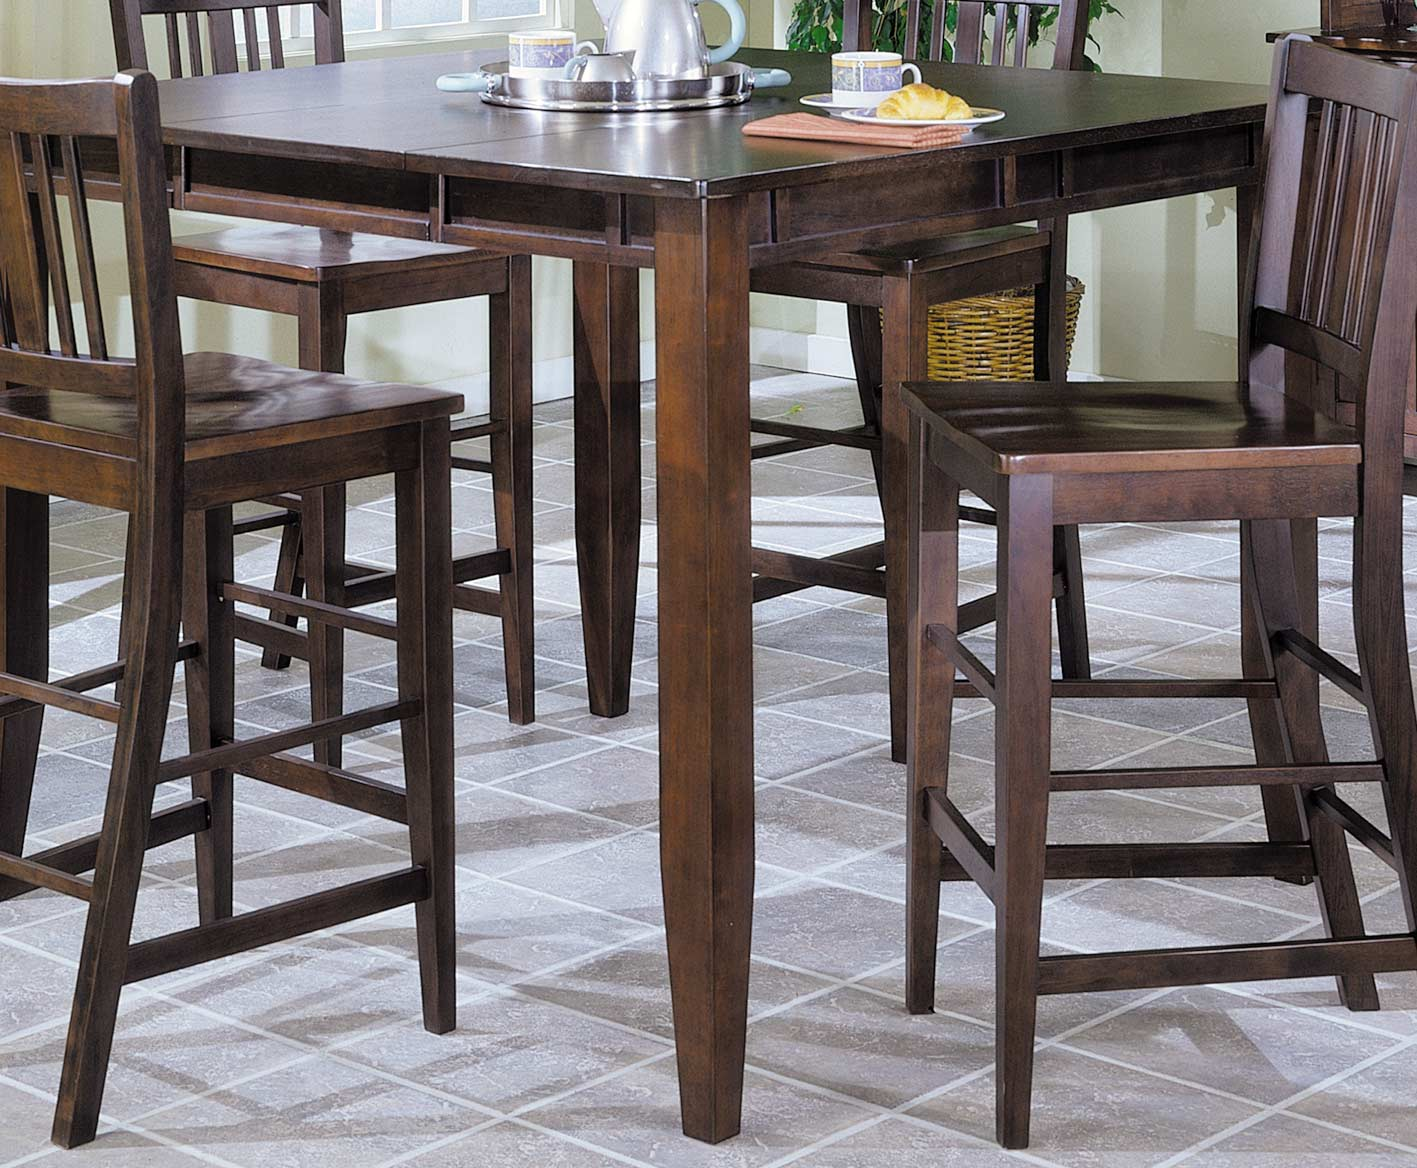 Pub Table With Chairs Homelegance Market Square Pub Dining Table Wth Butterfly